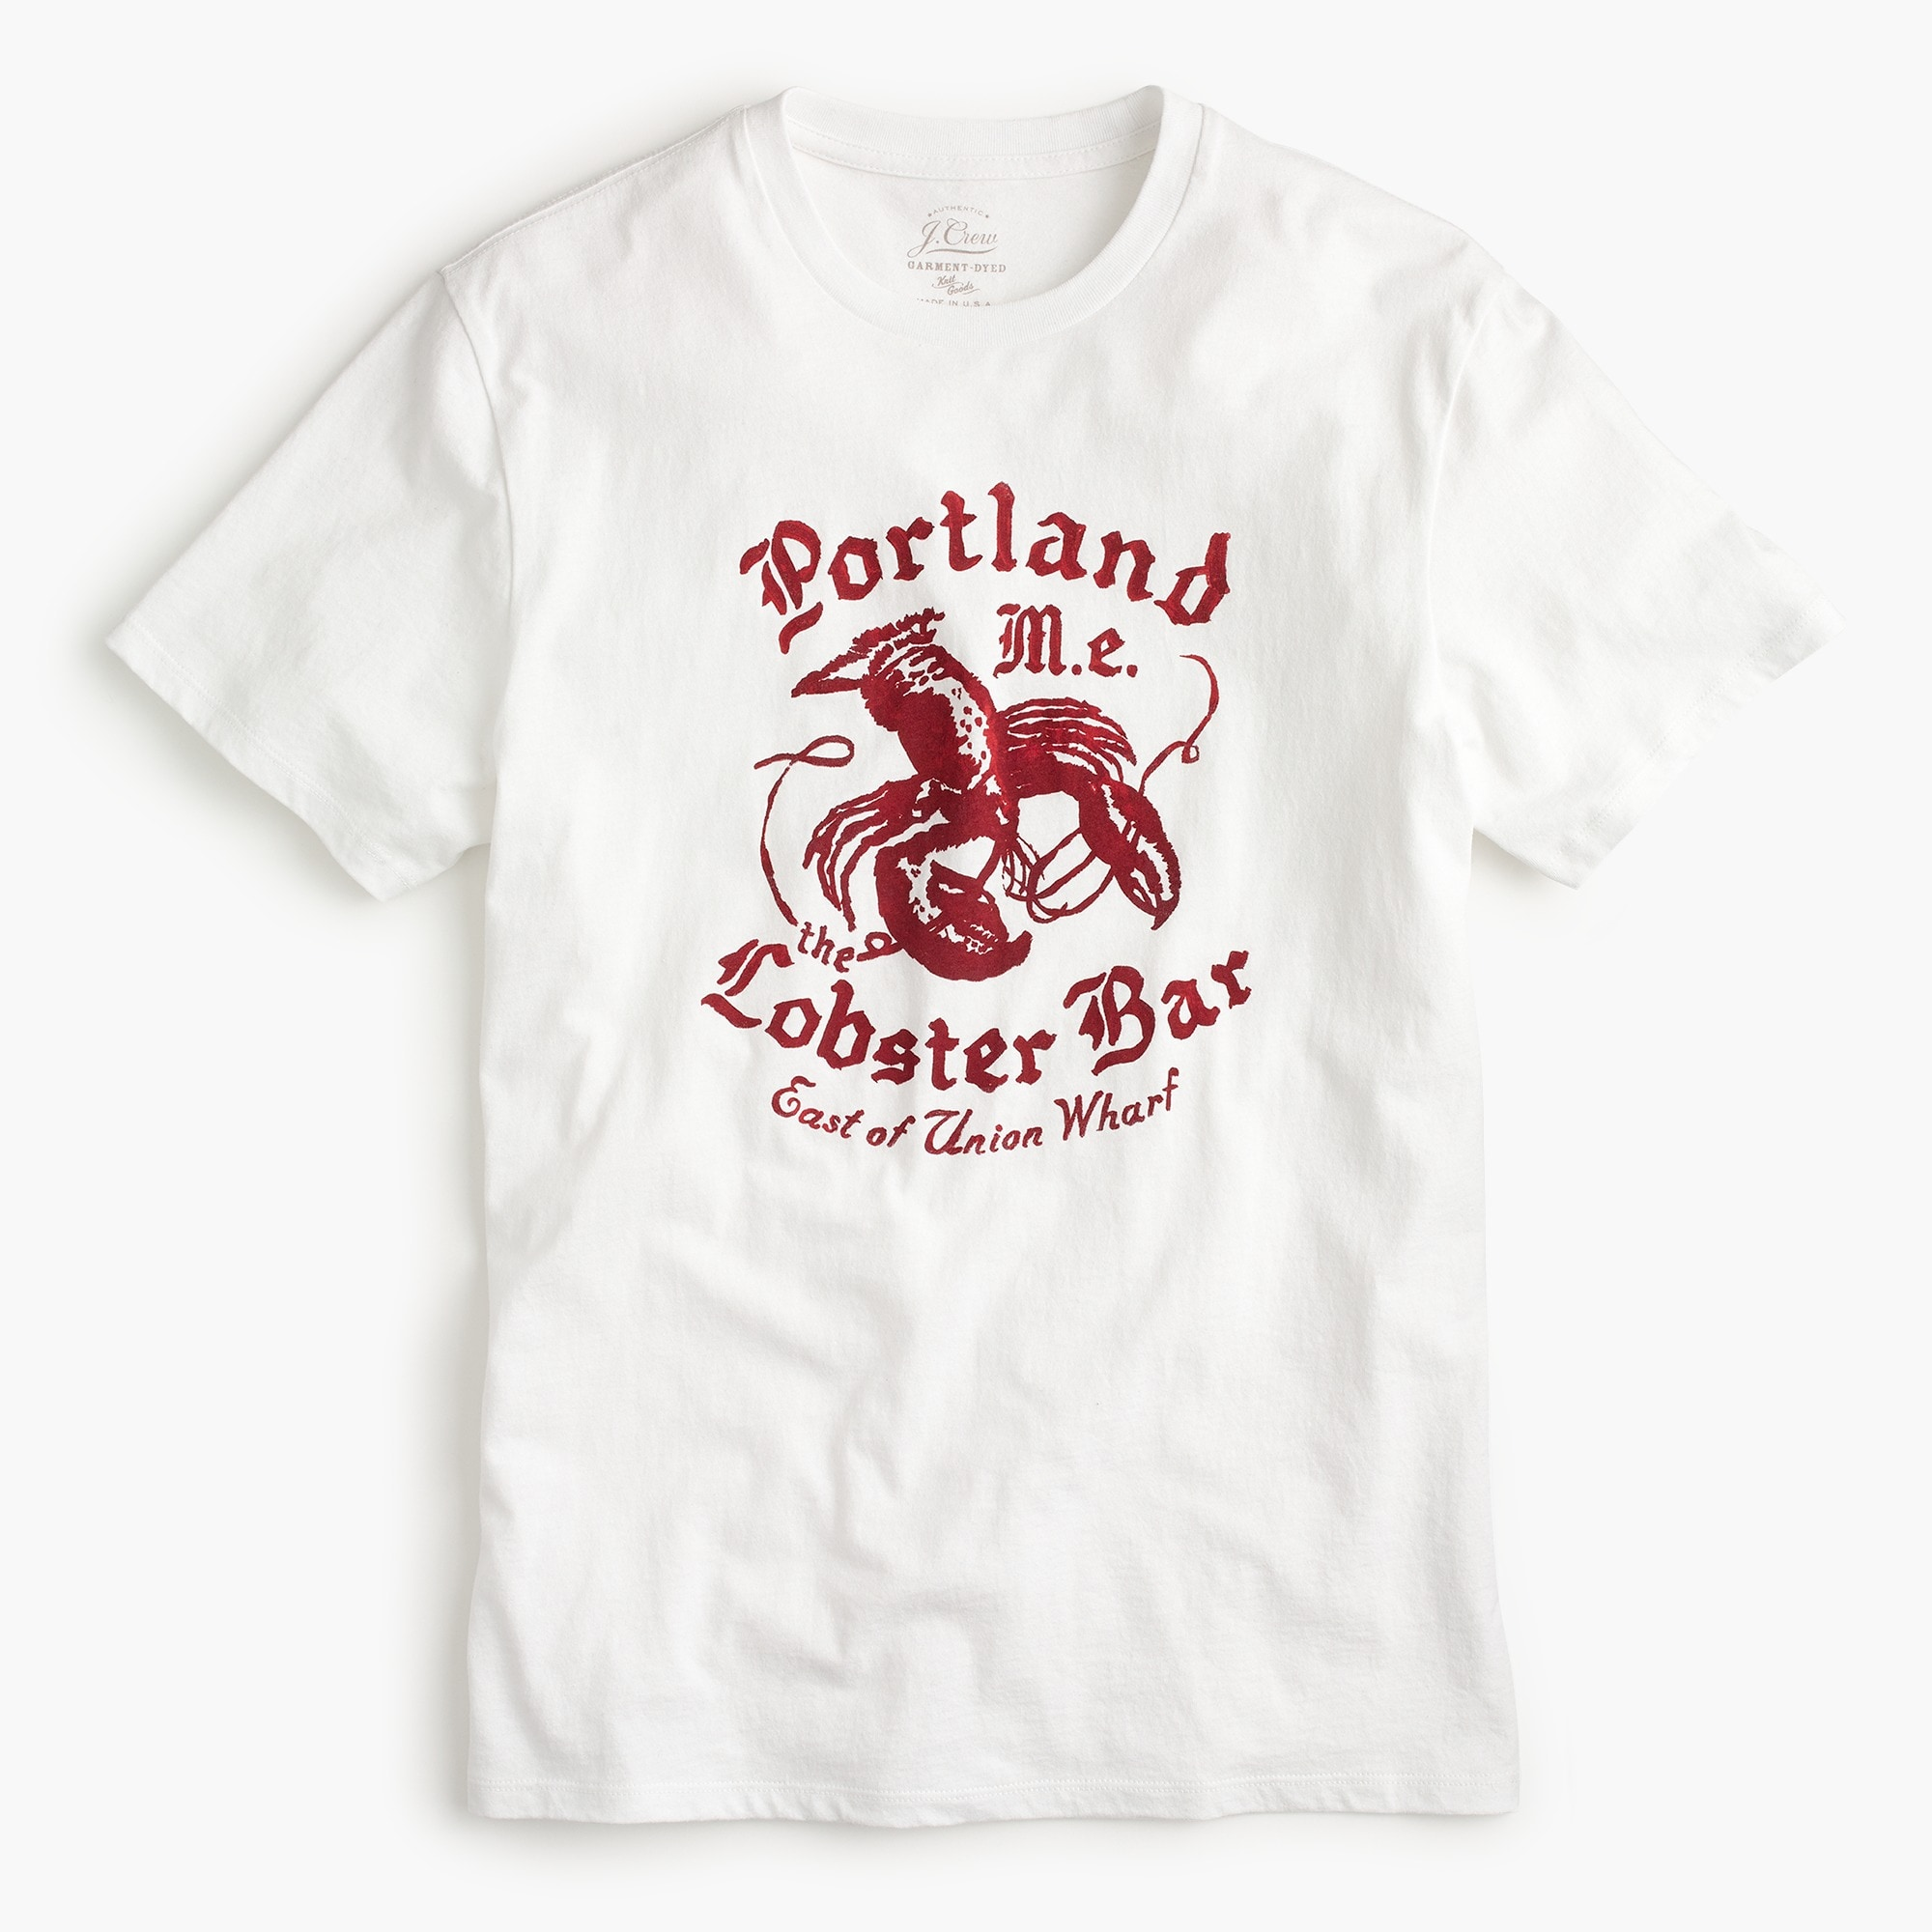 men's portland lobster bar graphic t-shirt - men's knits